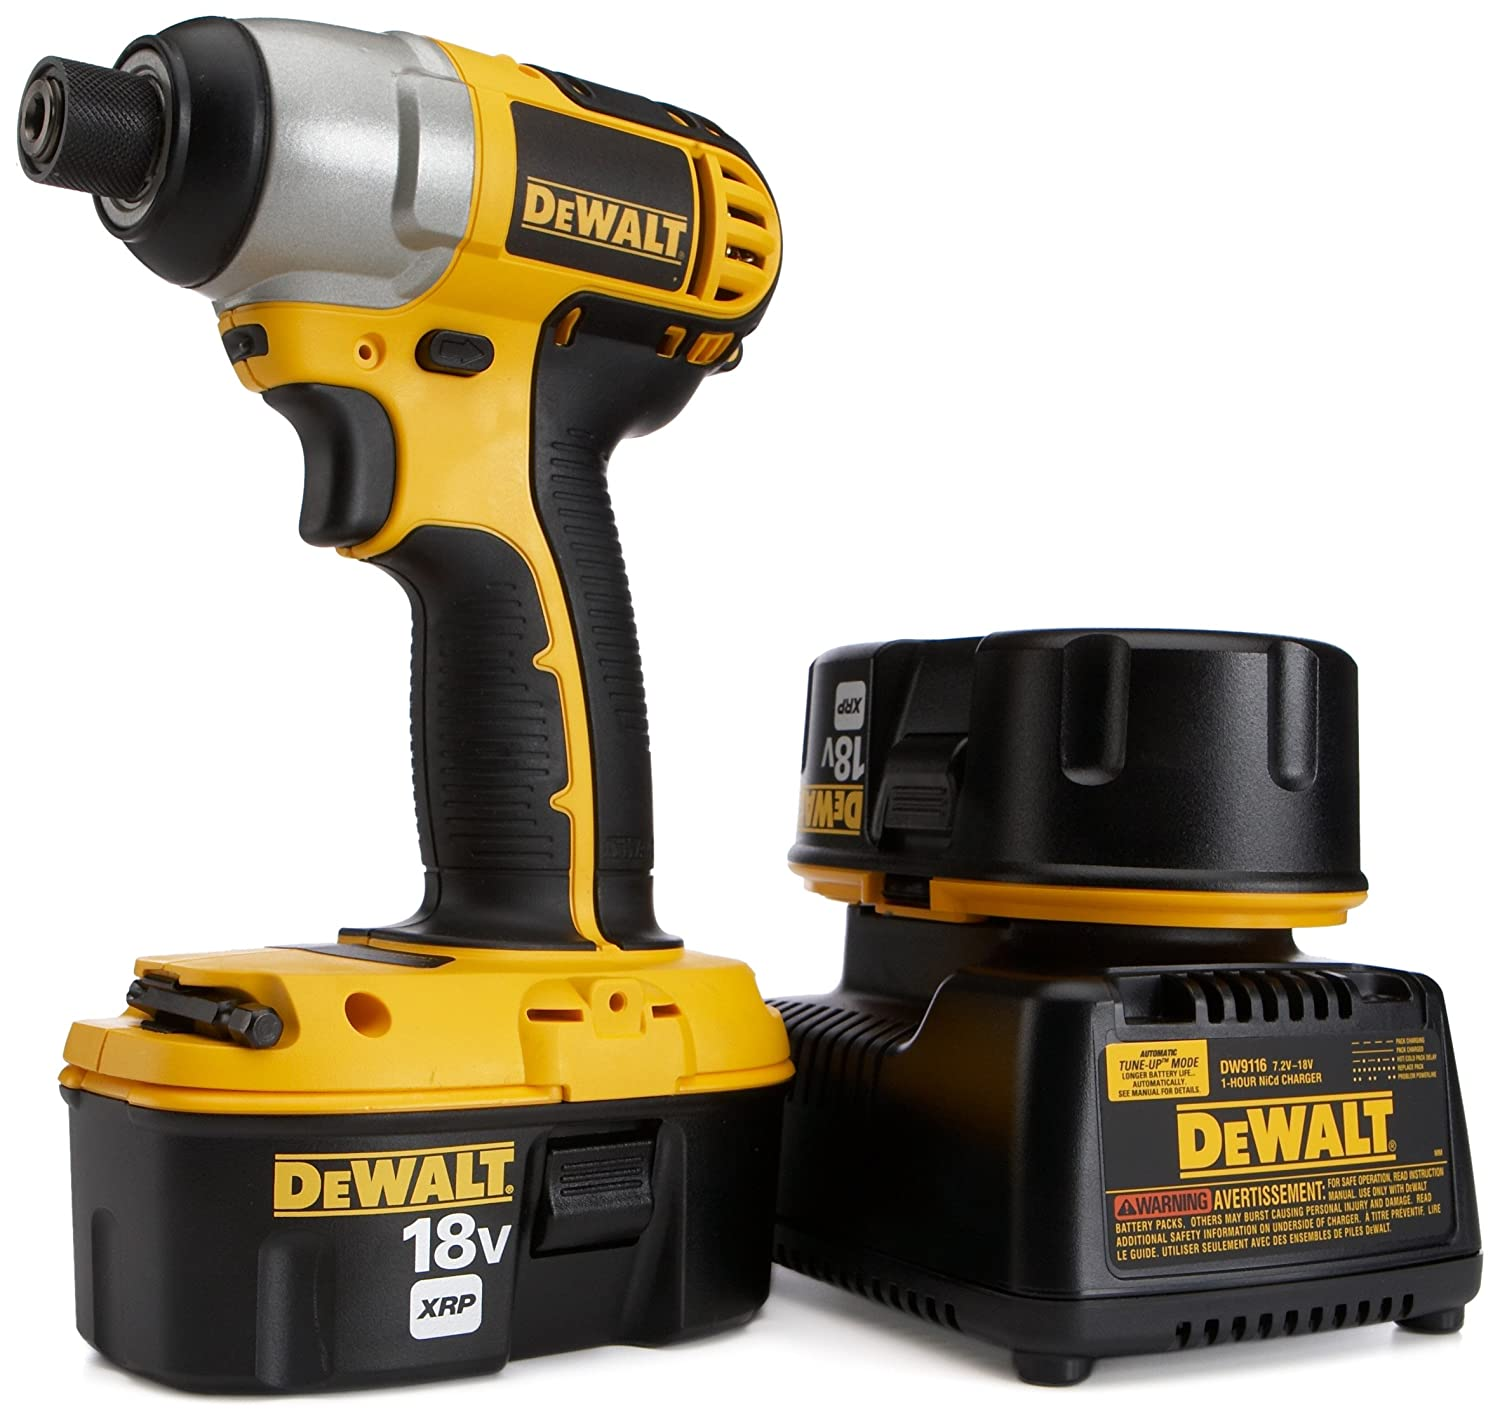 Dewalt 18-volt 1/4 in. (6. 4 mm) cordless impact driver (tool-only.